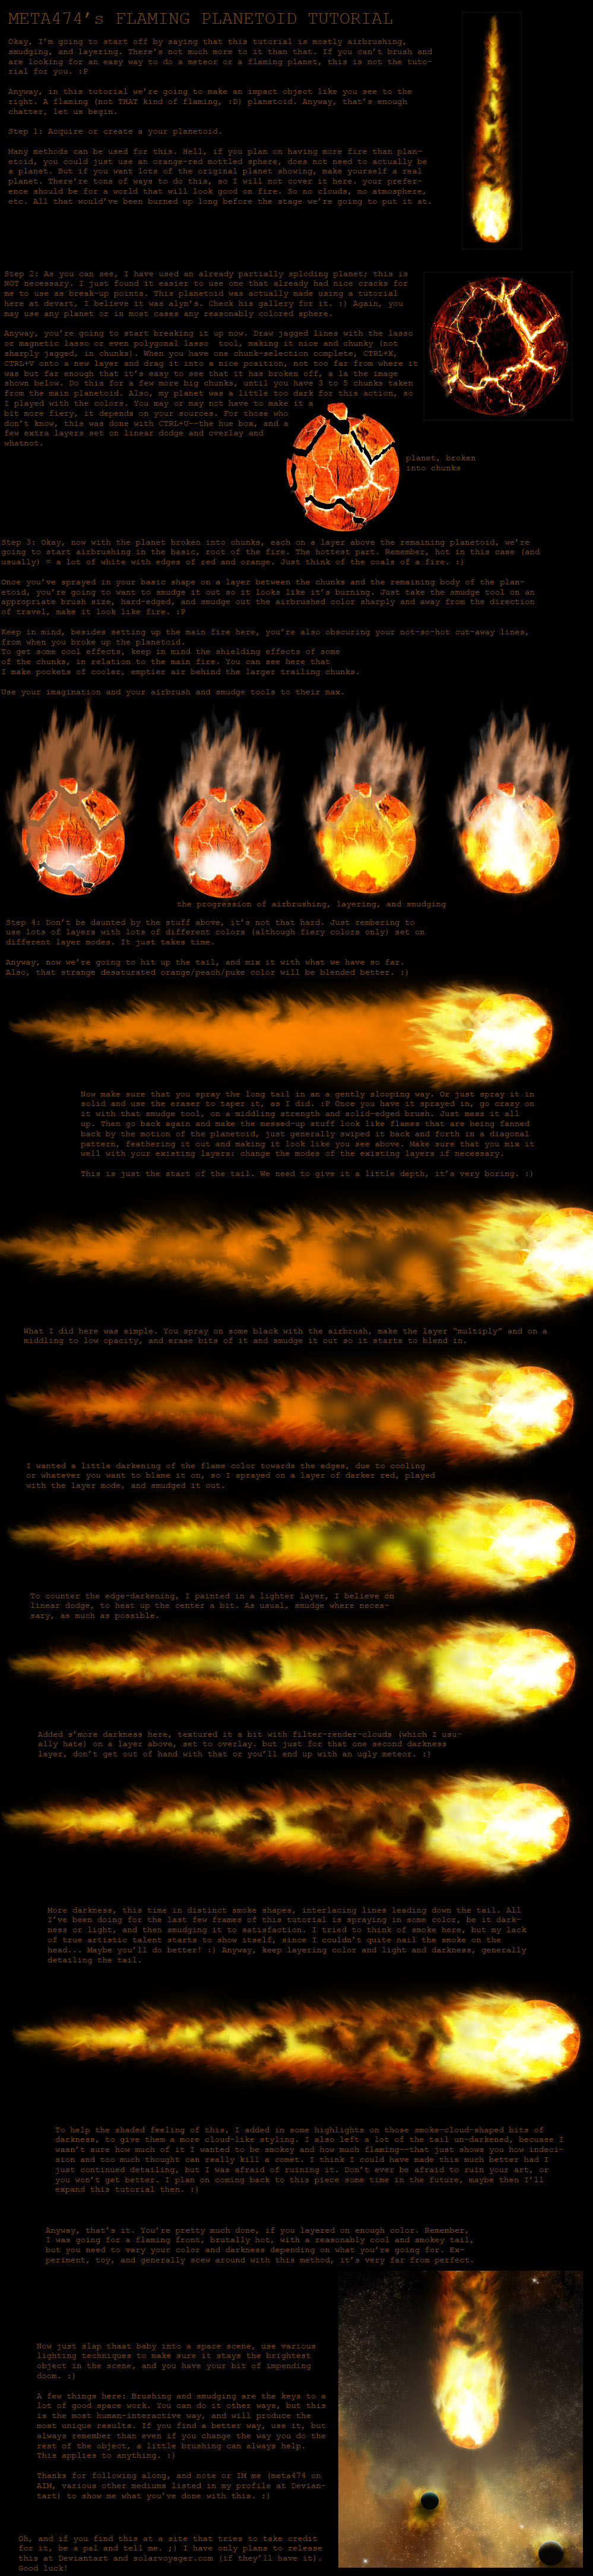 flaming asteroid hitting the earth - photo #33